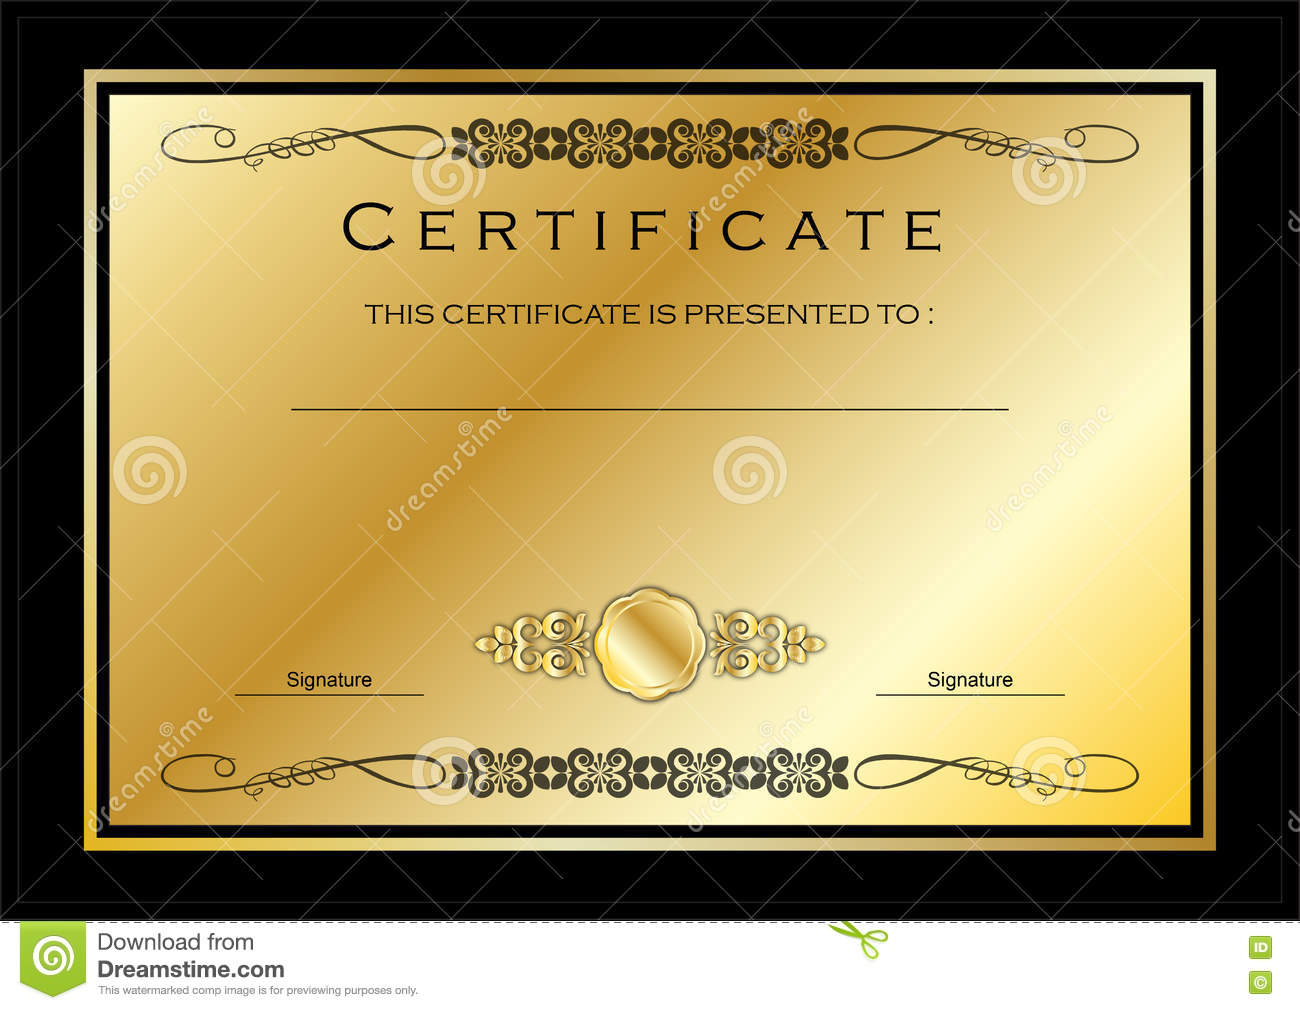 Gold certificate diploma award template stock illustration gold certificate diploma award template 1betcityfo Images